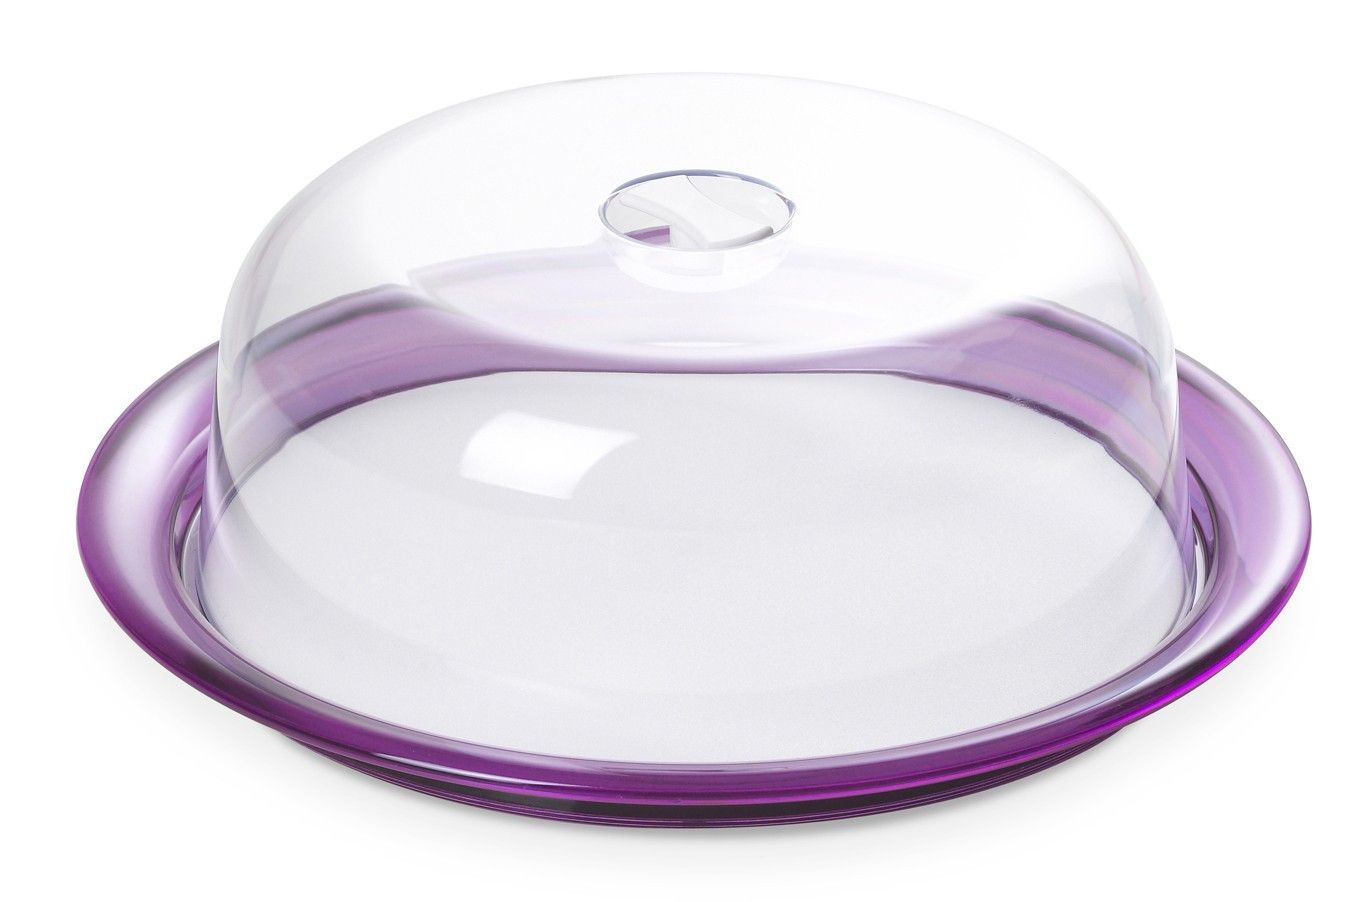 Omada Globo Acrylic Cake Serving Tray with Dome